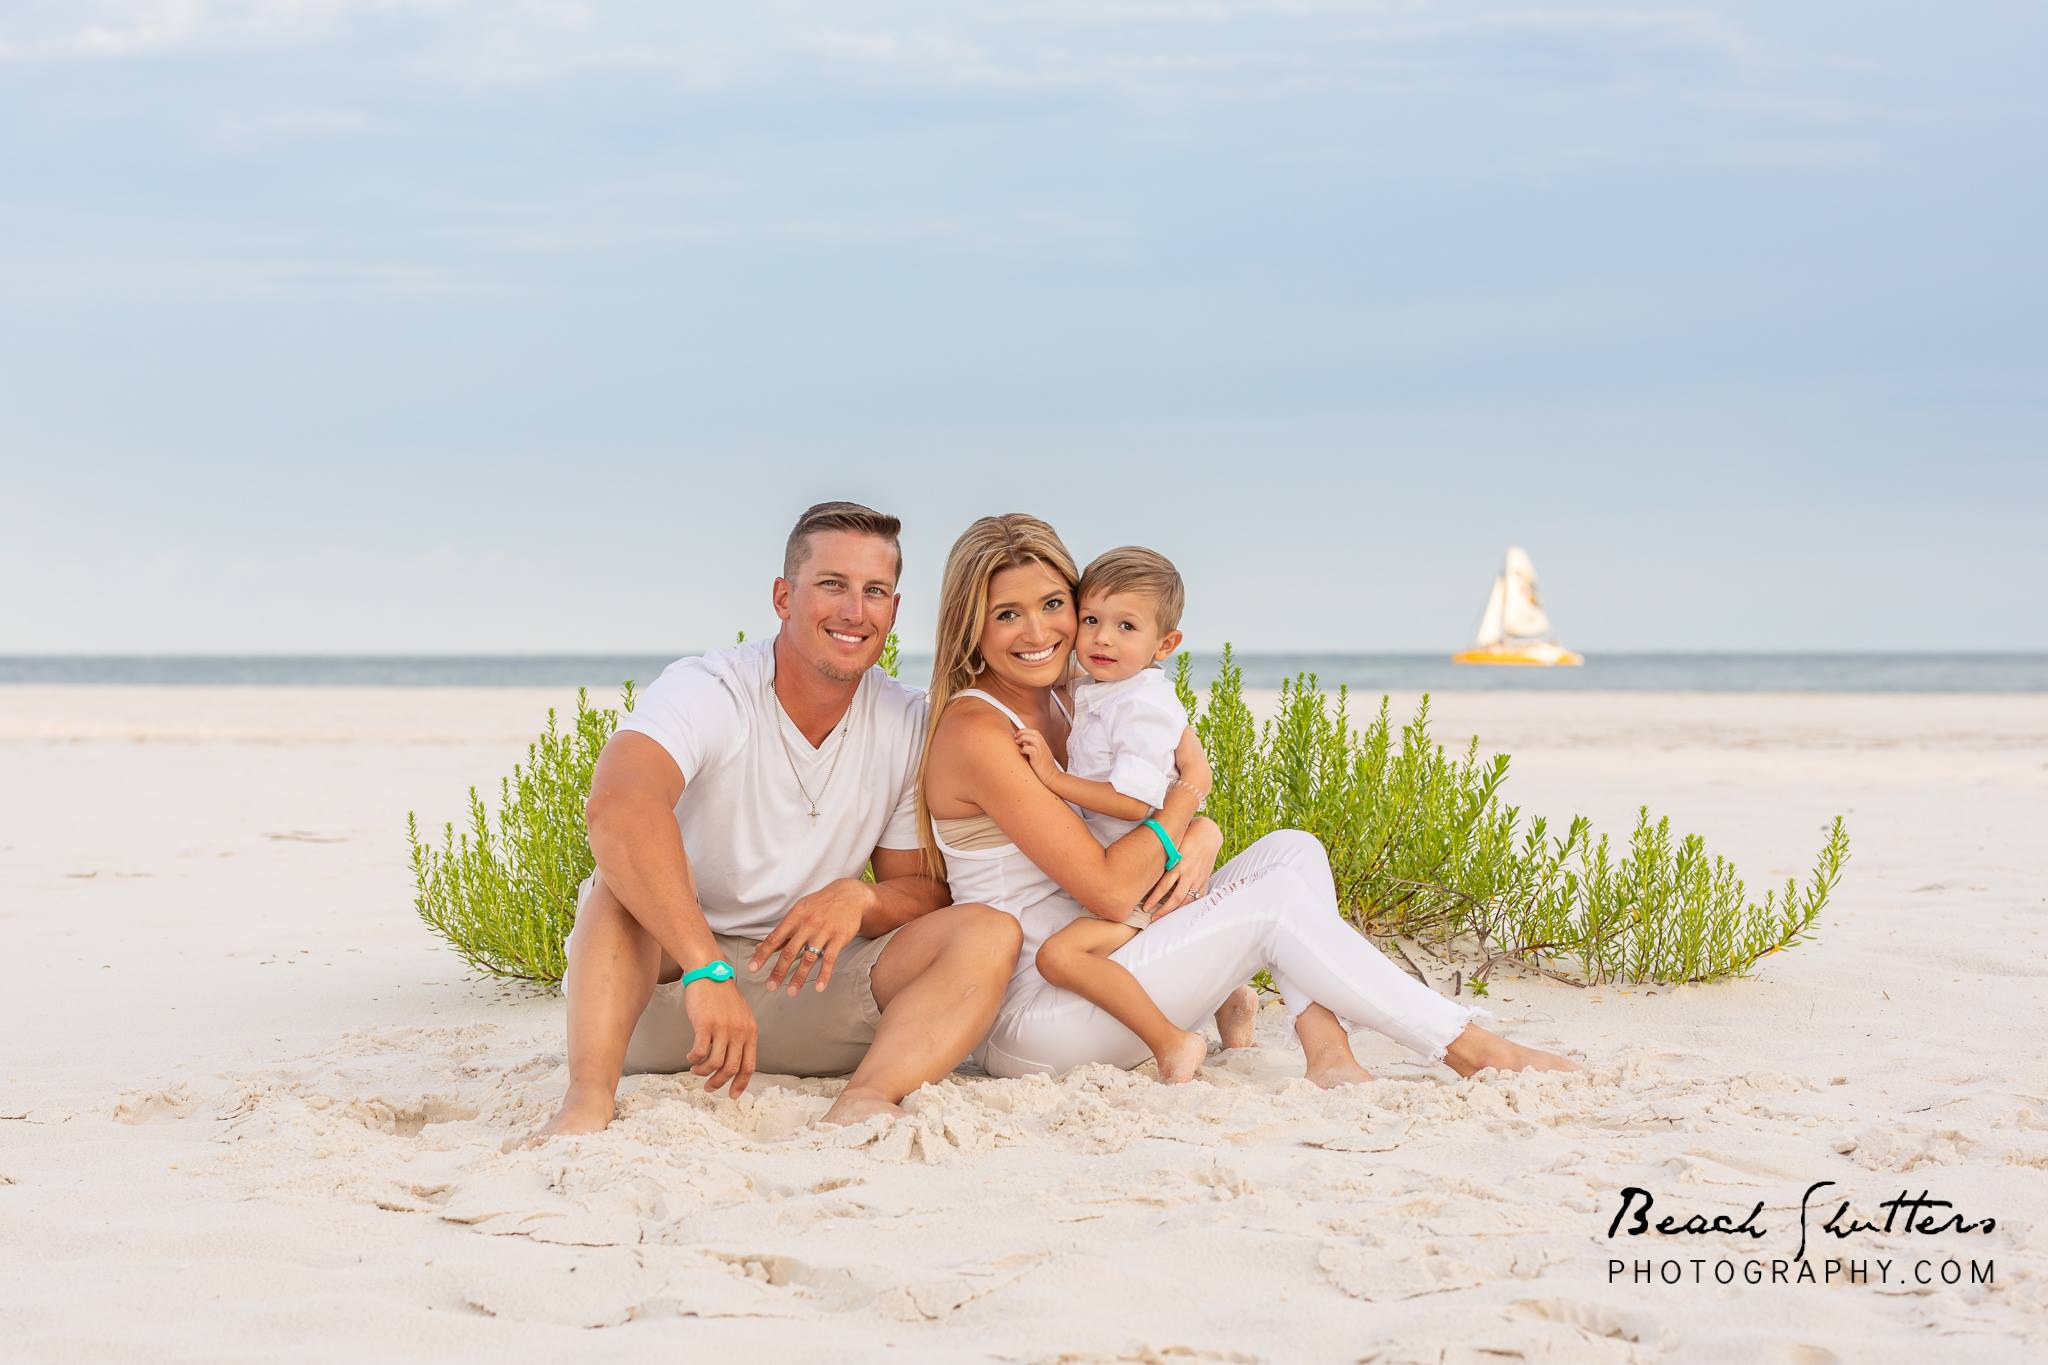 Turquoise Place outfits for family photos